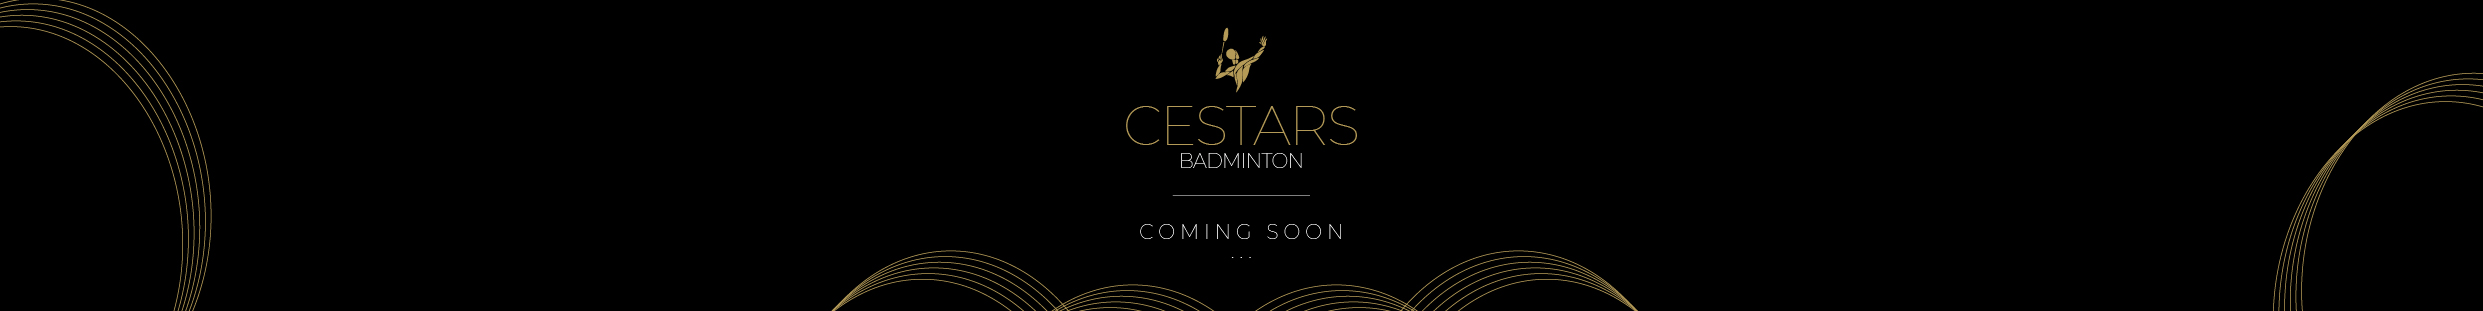 CESTARS Coming soon